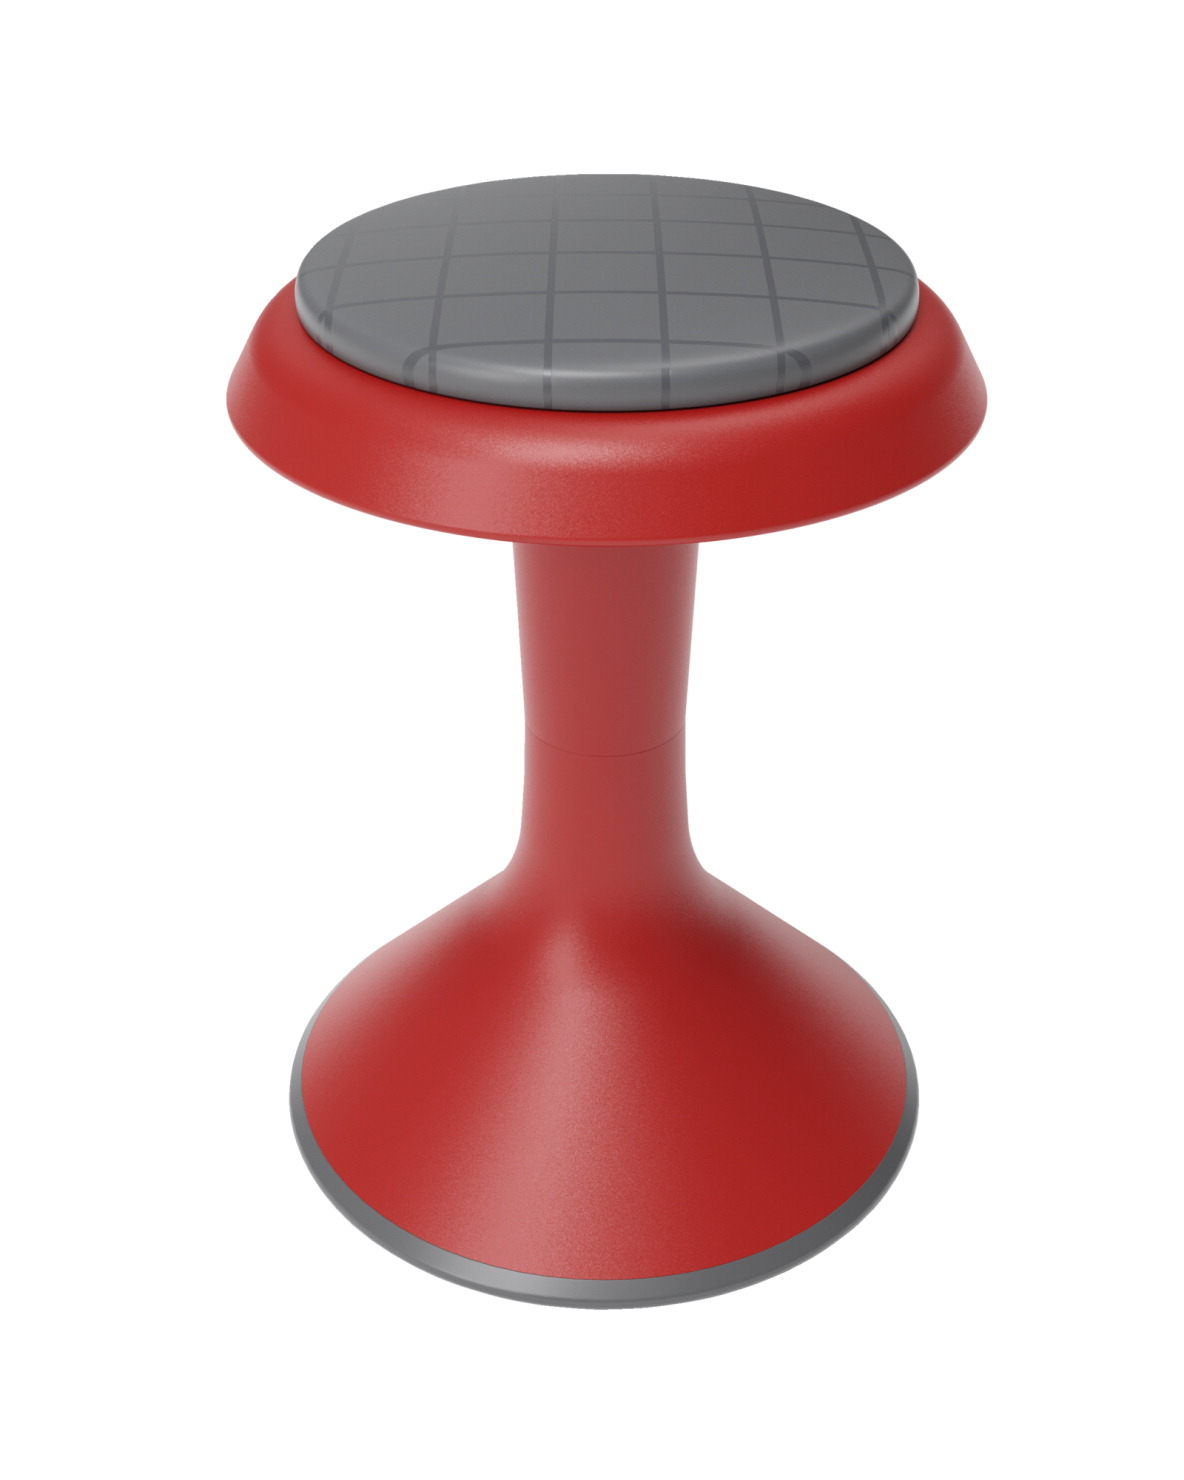 Classroom Select NeoRok Stool, Active Wobble Seating, Soft Seat, 19-1/2 Inch Seat Height